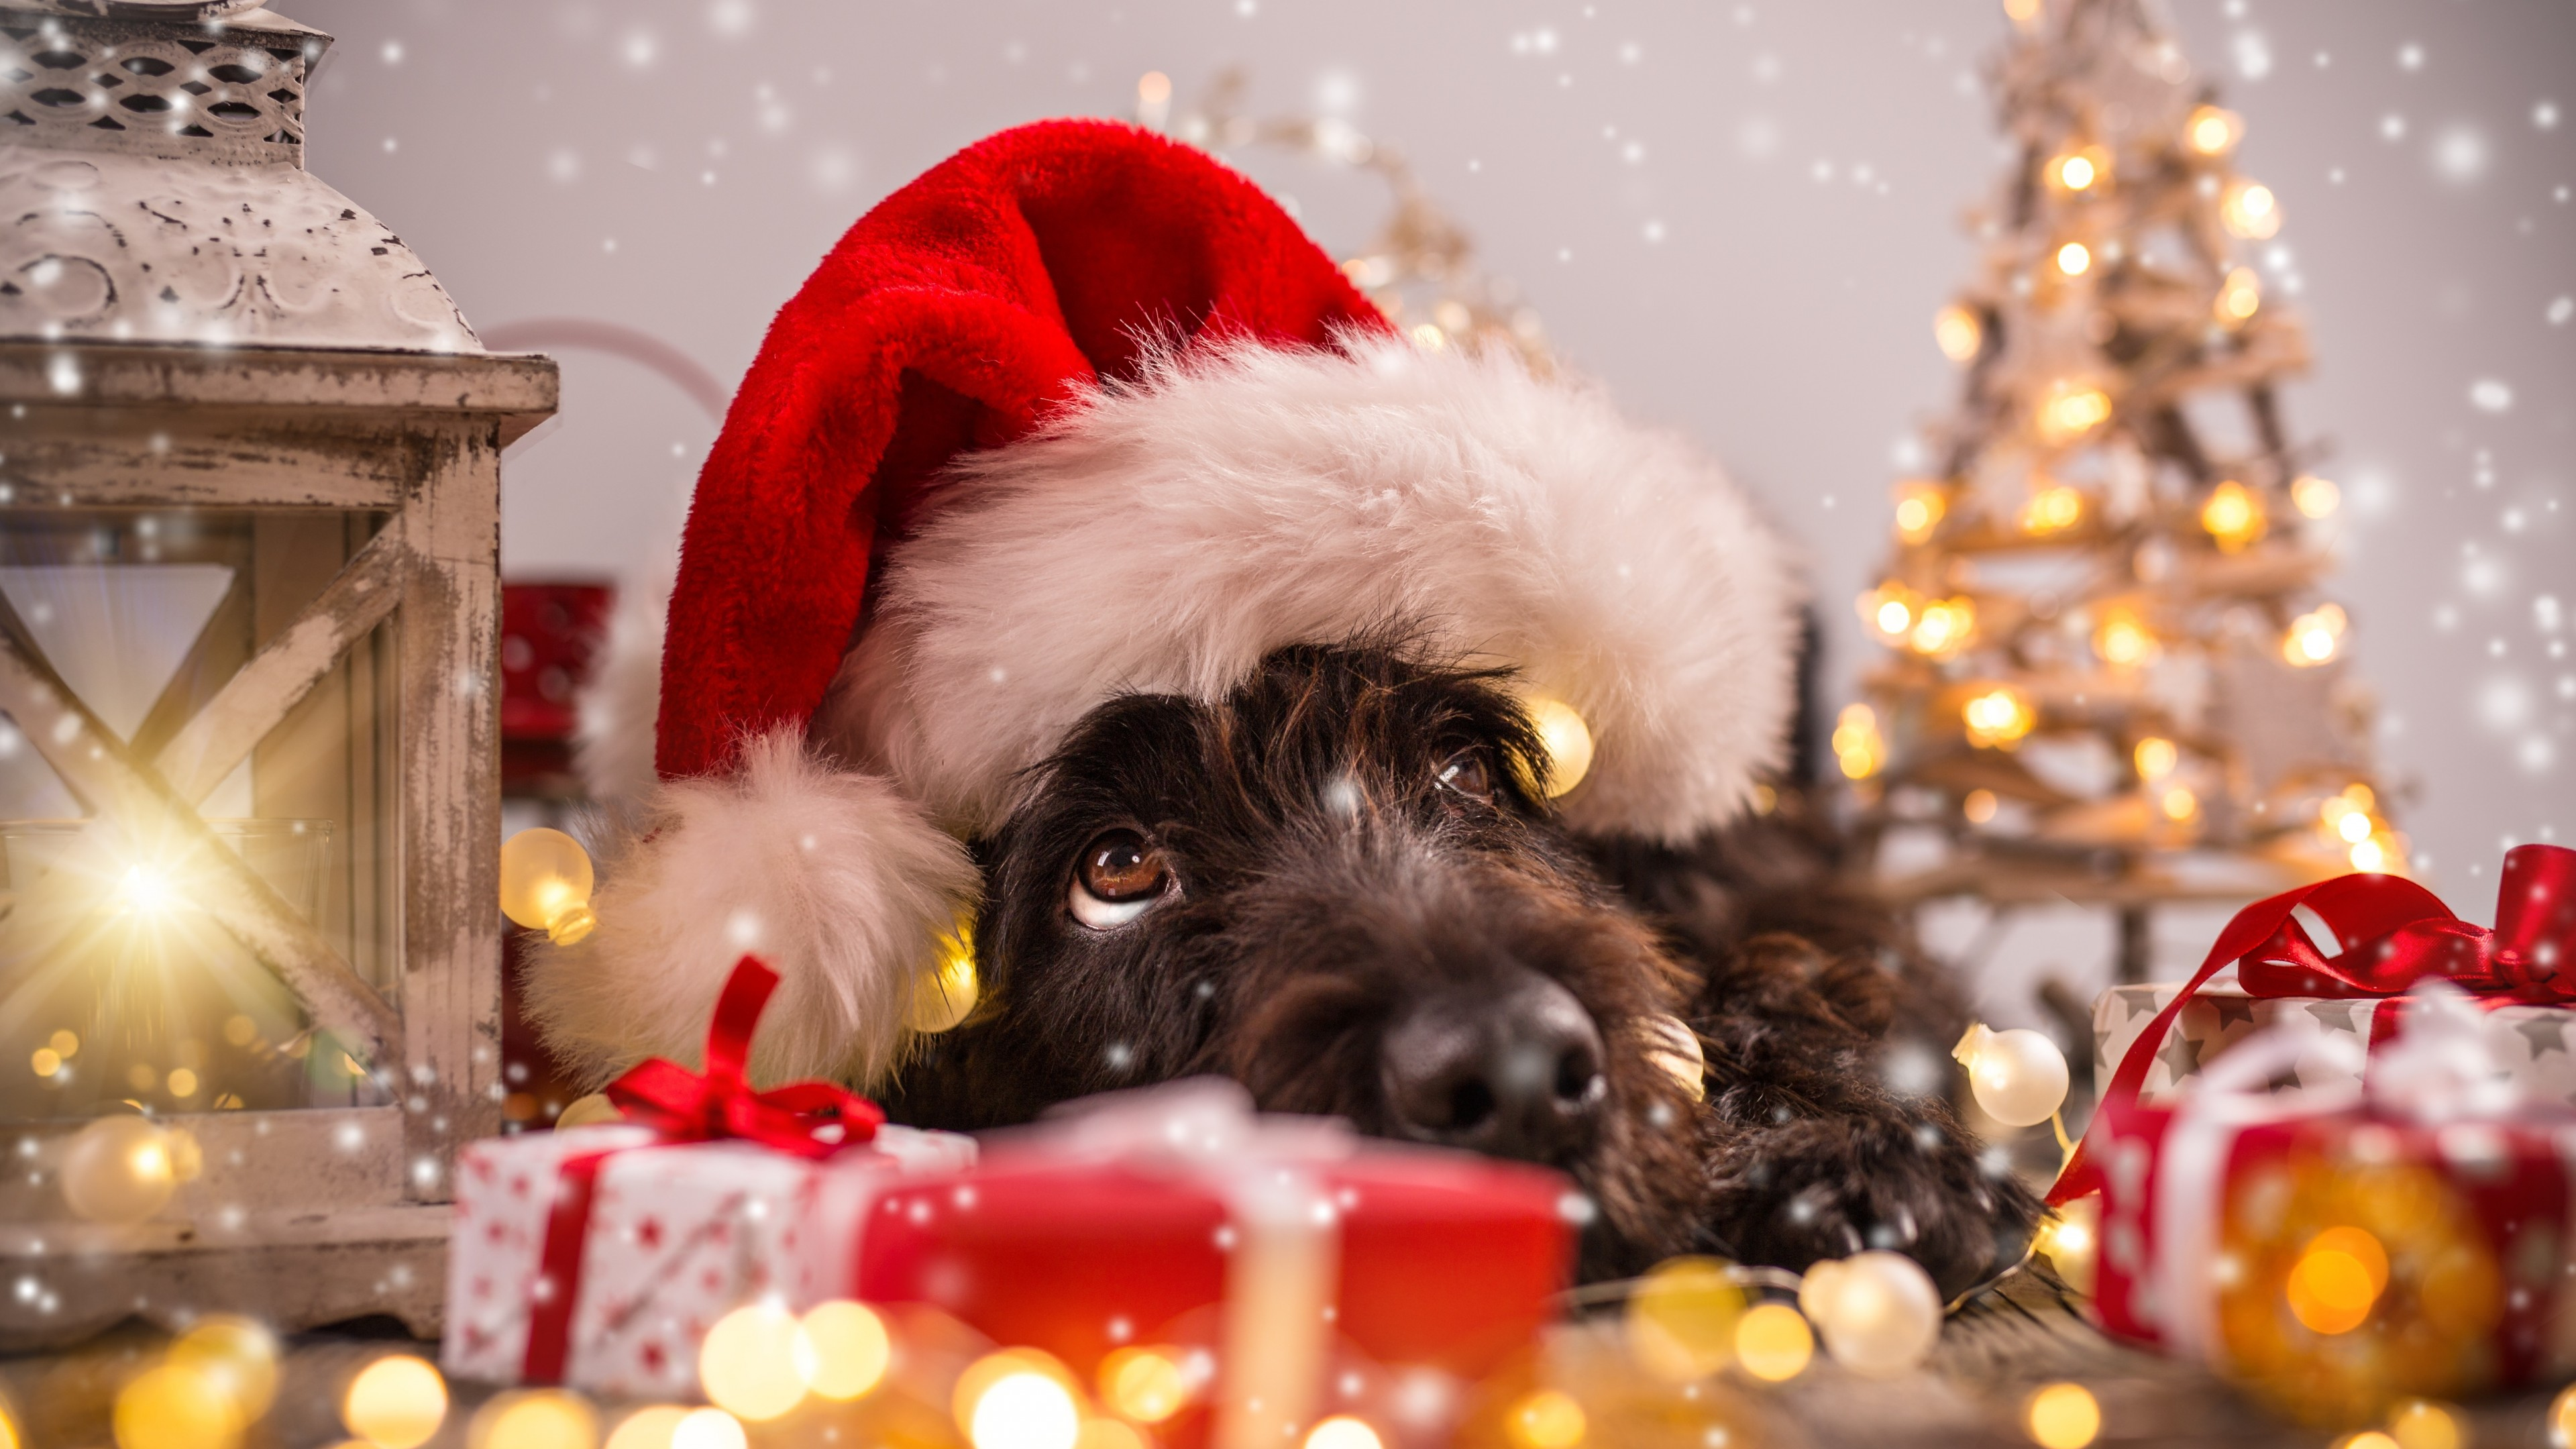 christmas 3840x2160 new year snow dog cute animals 4k 16834